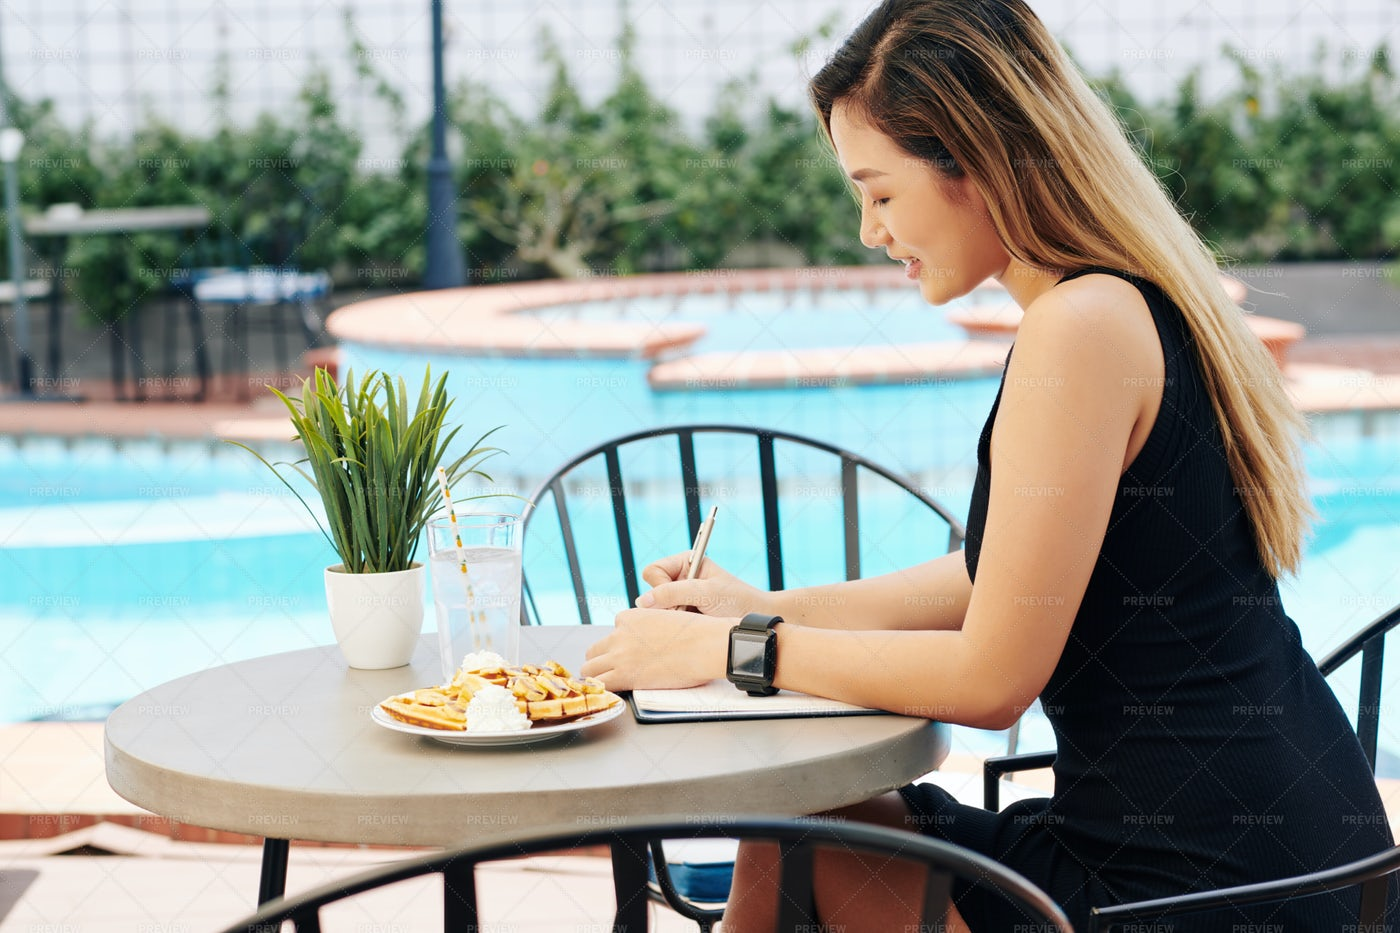 Woman Eating Breakfast And Filling: Stock Photos